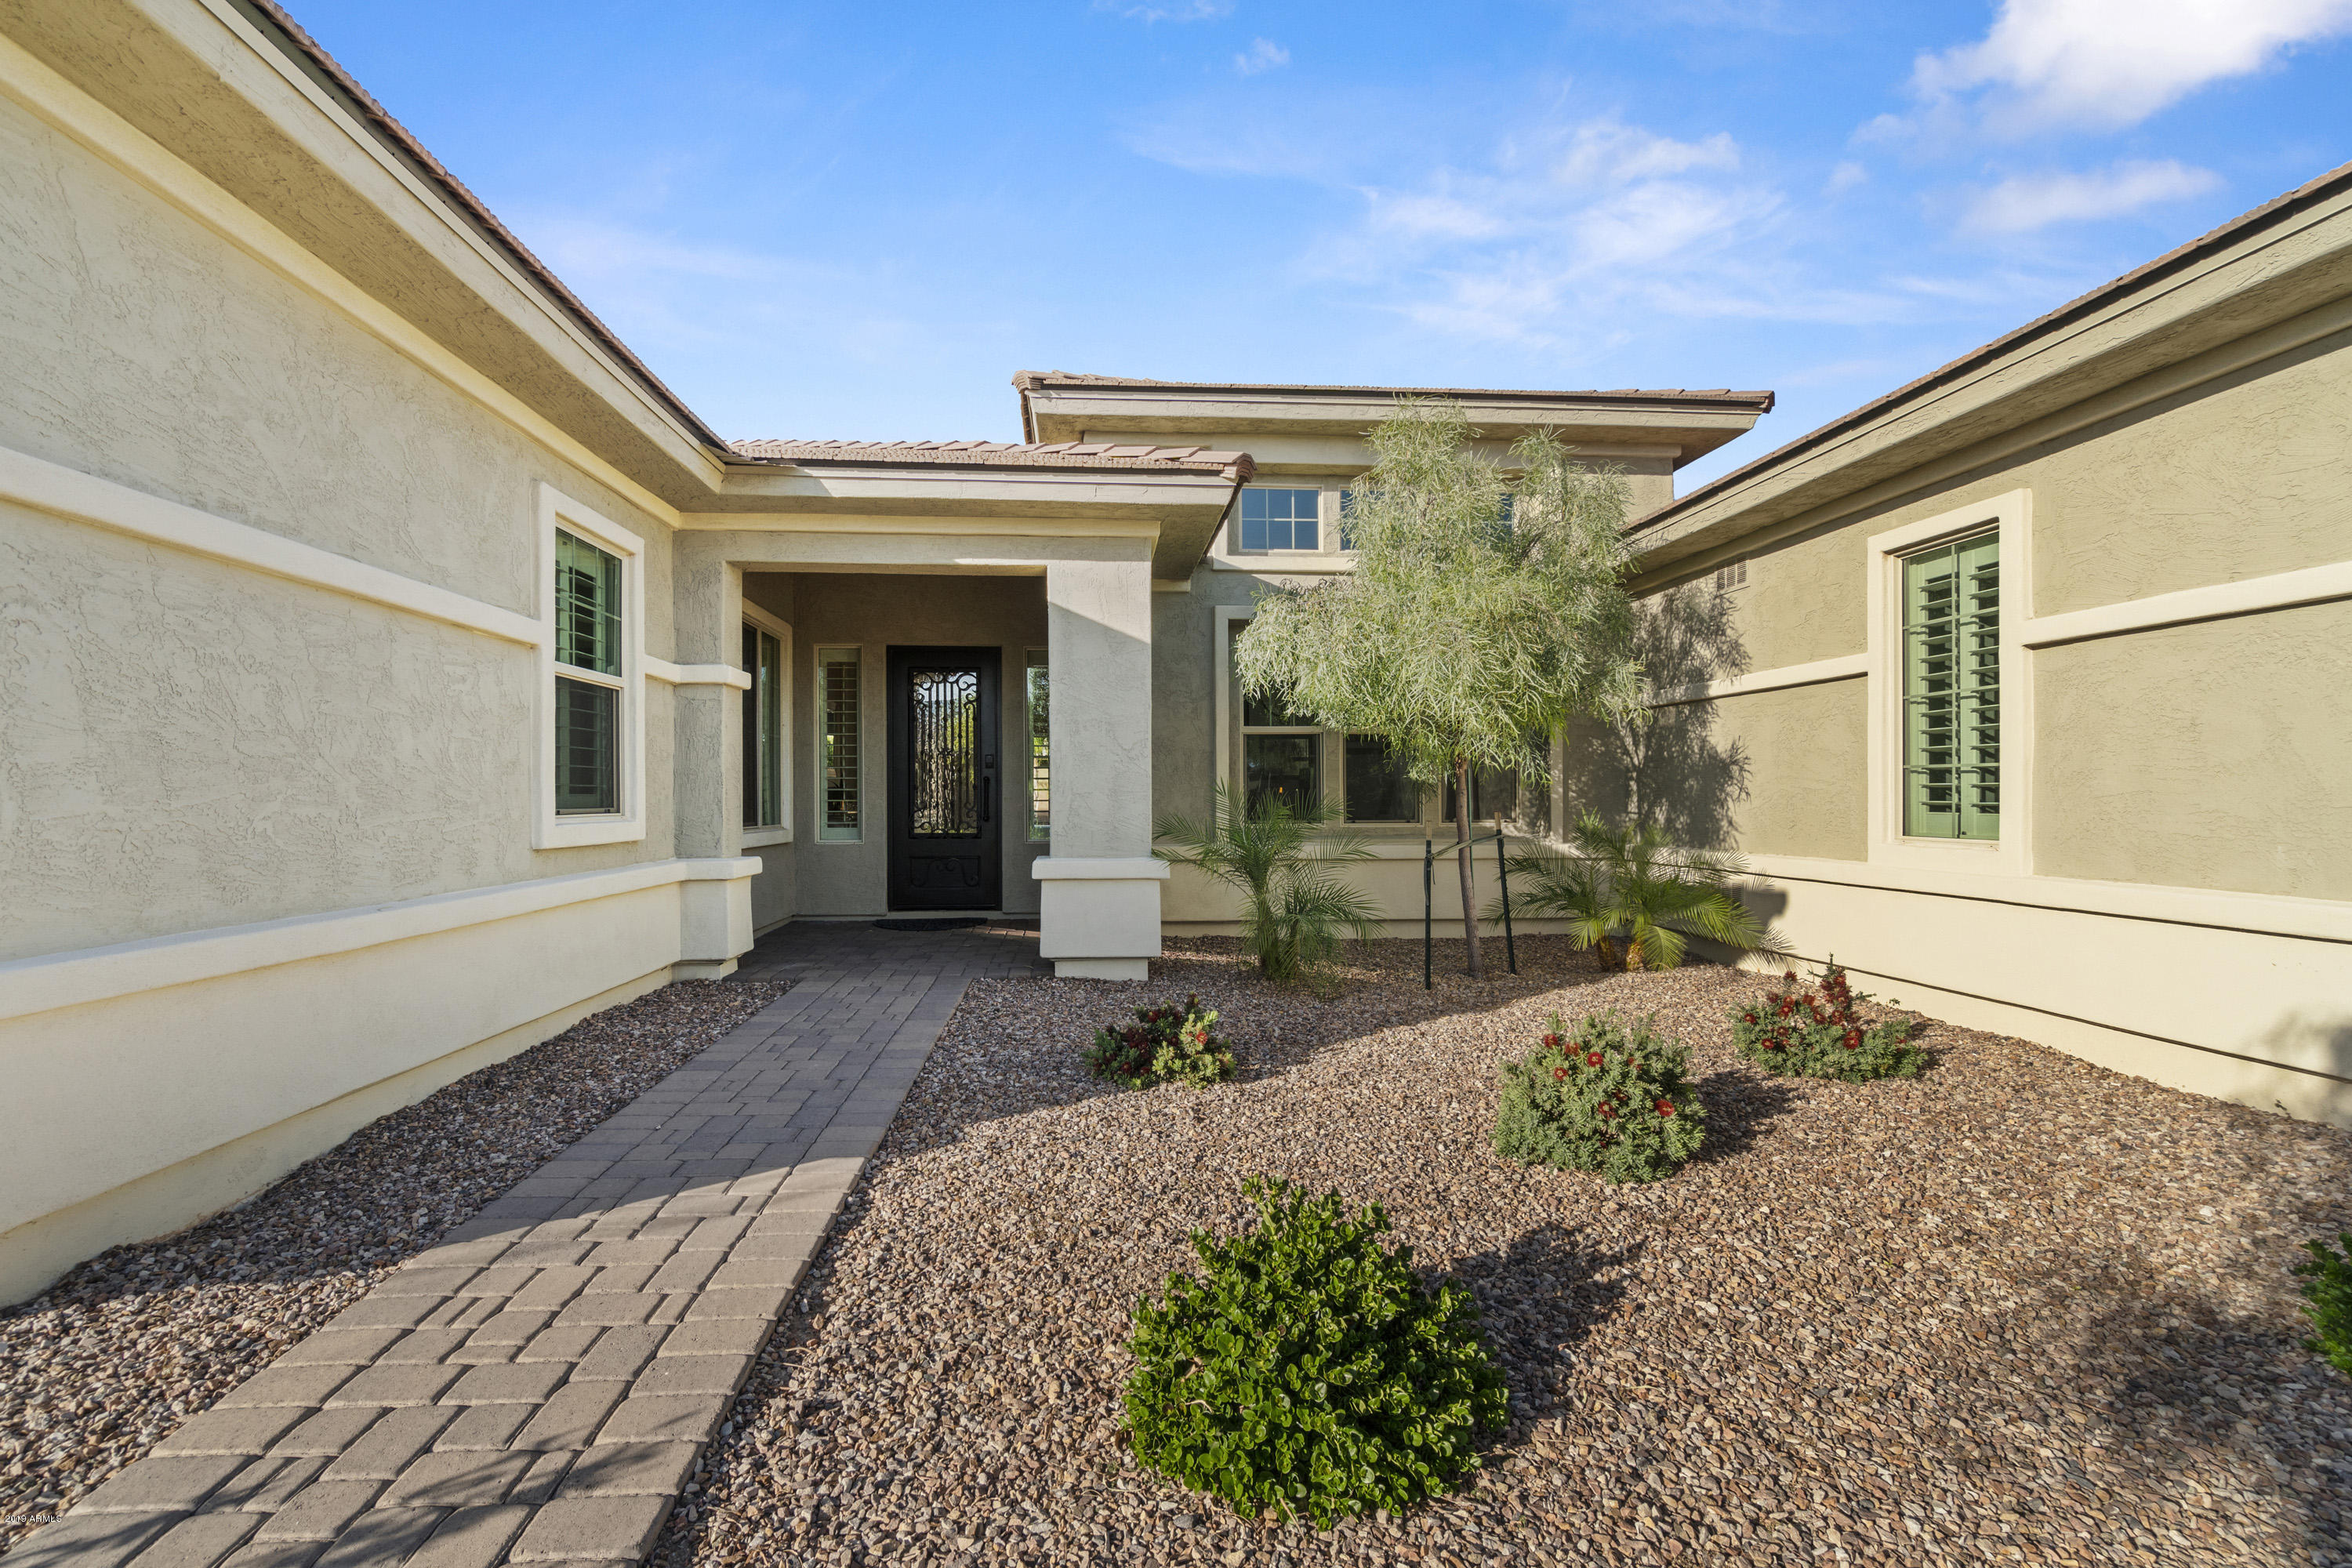 Photo of 3304 E ASTER Drive, Chandler, AZ 85286